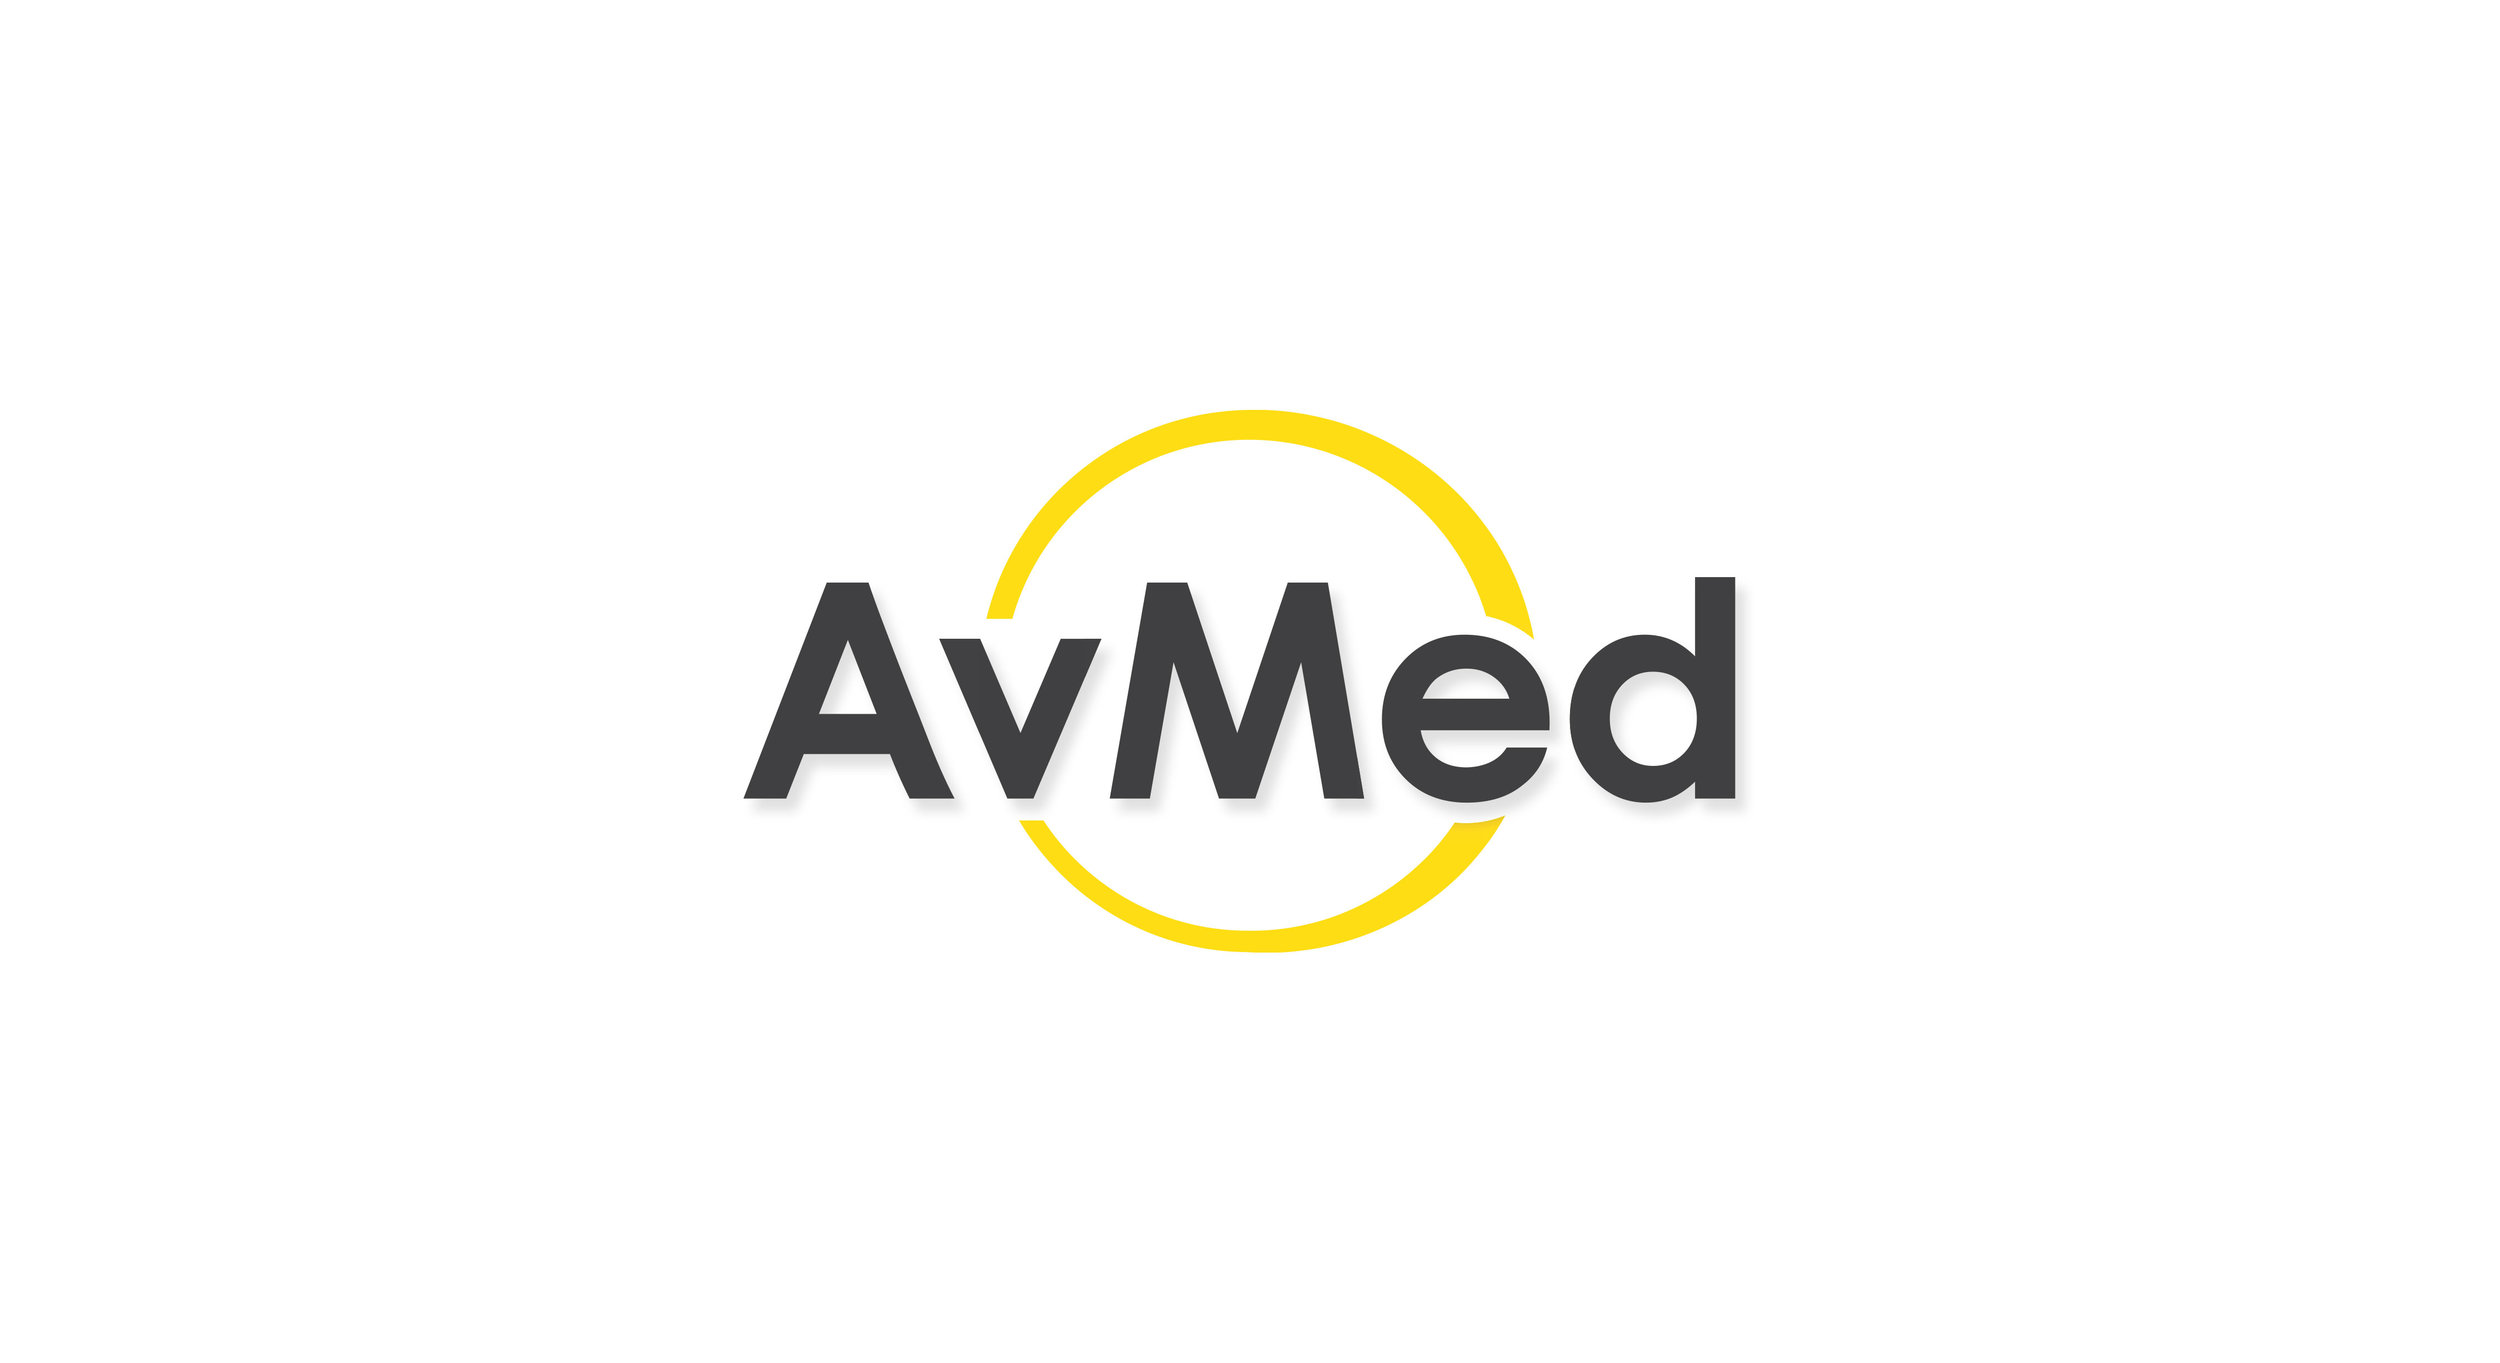 AvMed_logo.jpg